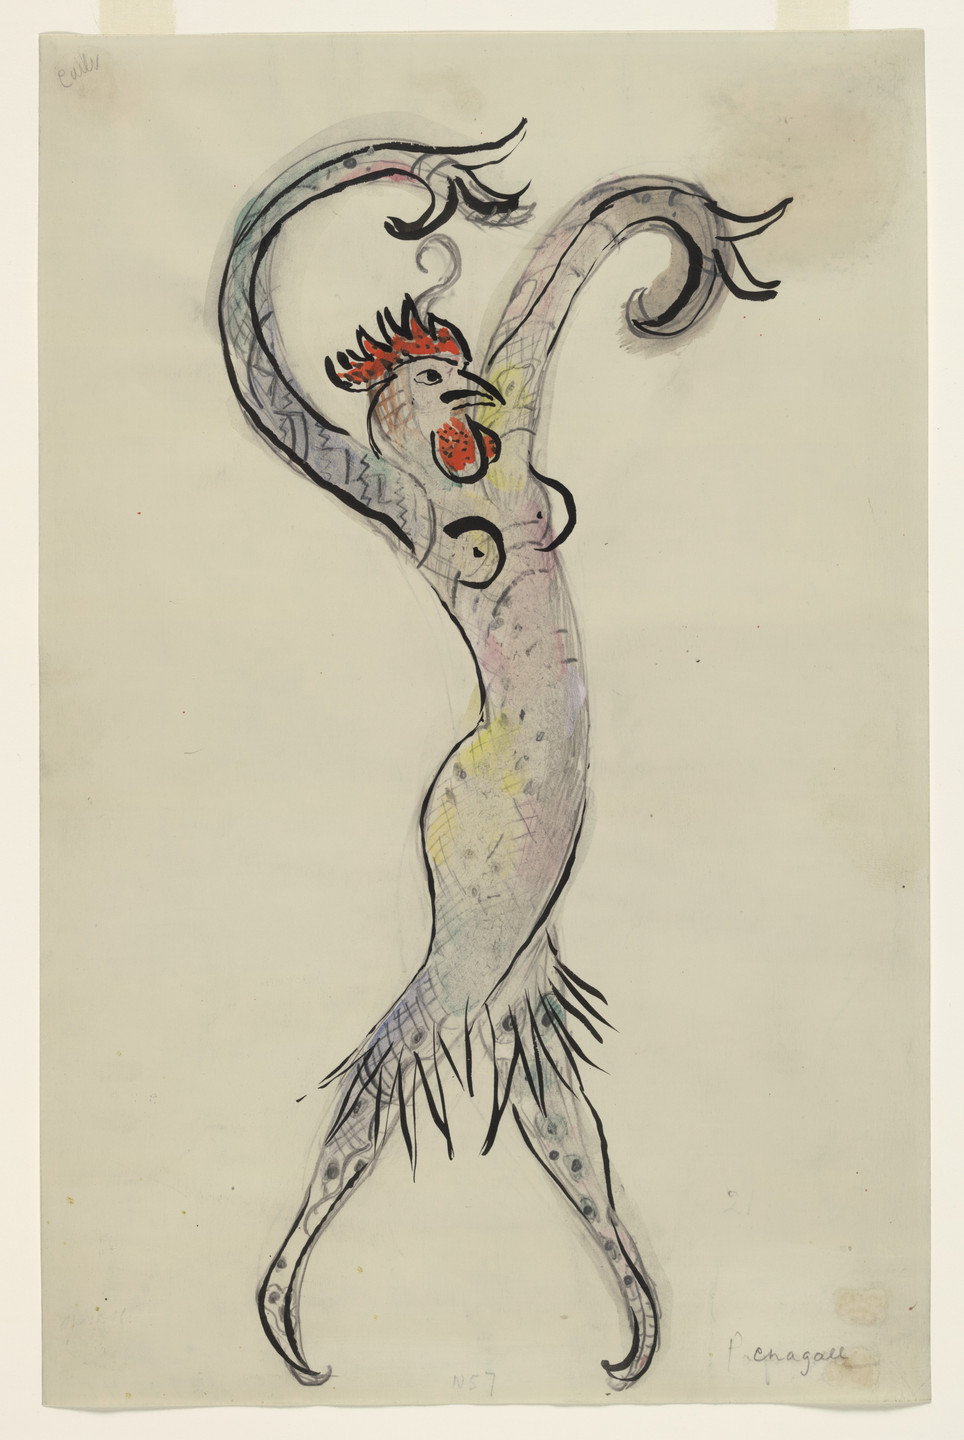 Marc Chagall. A Rooster. Costume design for Scene IV of the ballet Aleko. 1942